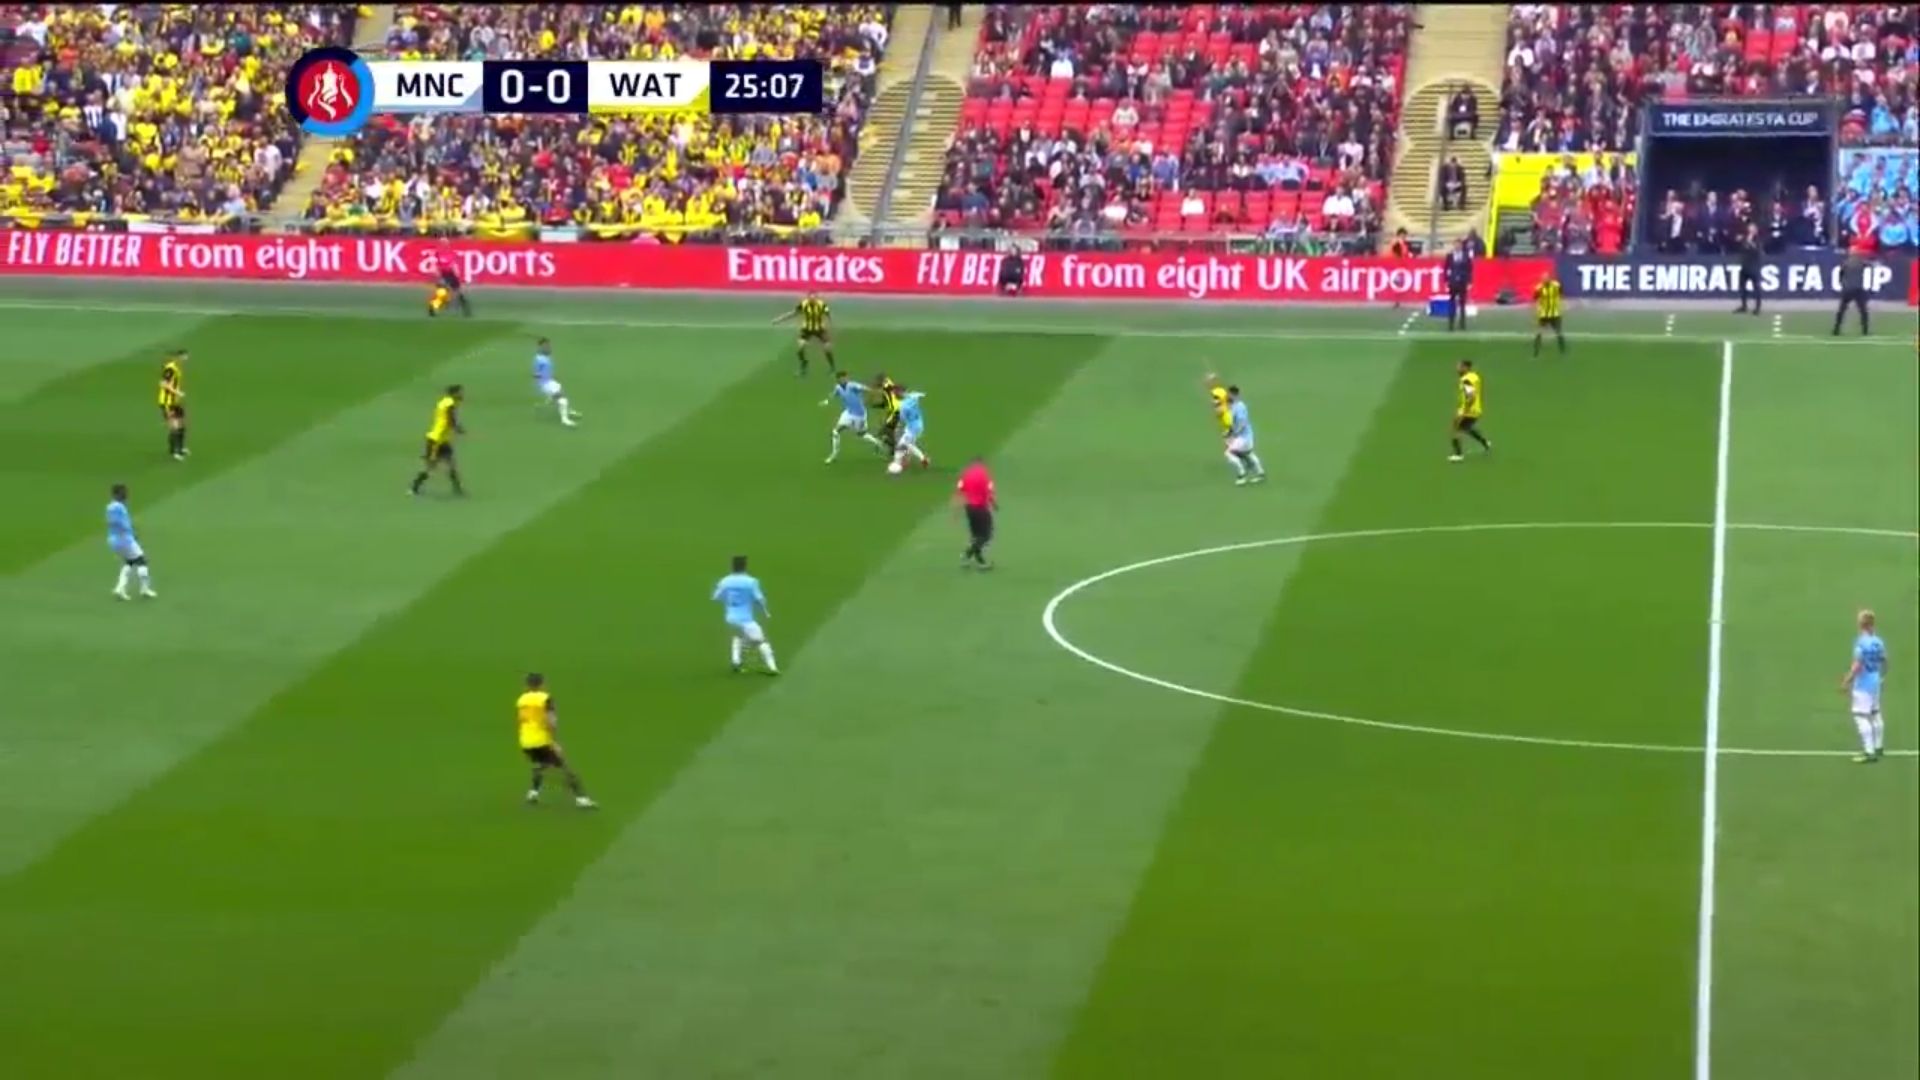 18-05-2019 - Manchester City 6-0 Watford (FA CUP - FINAL)